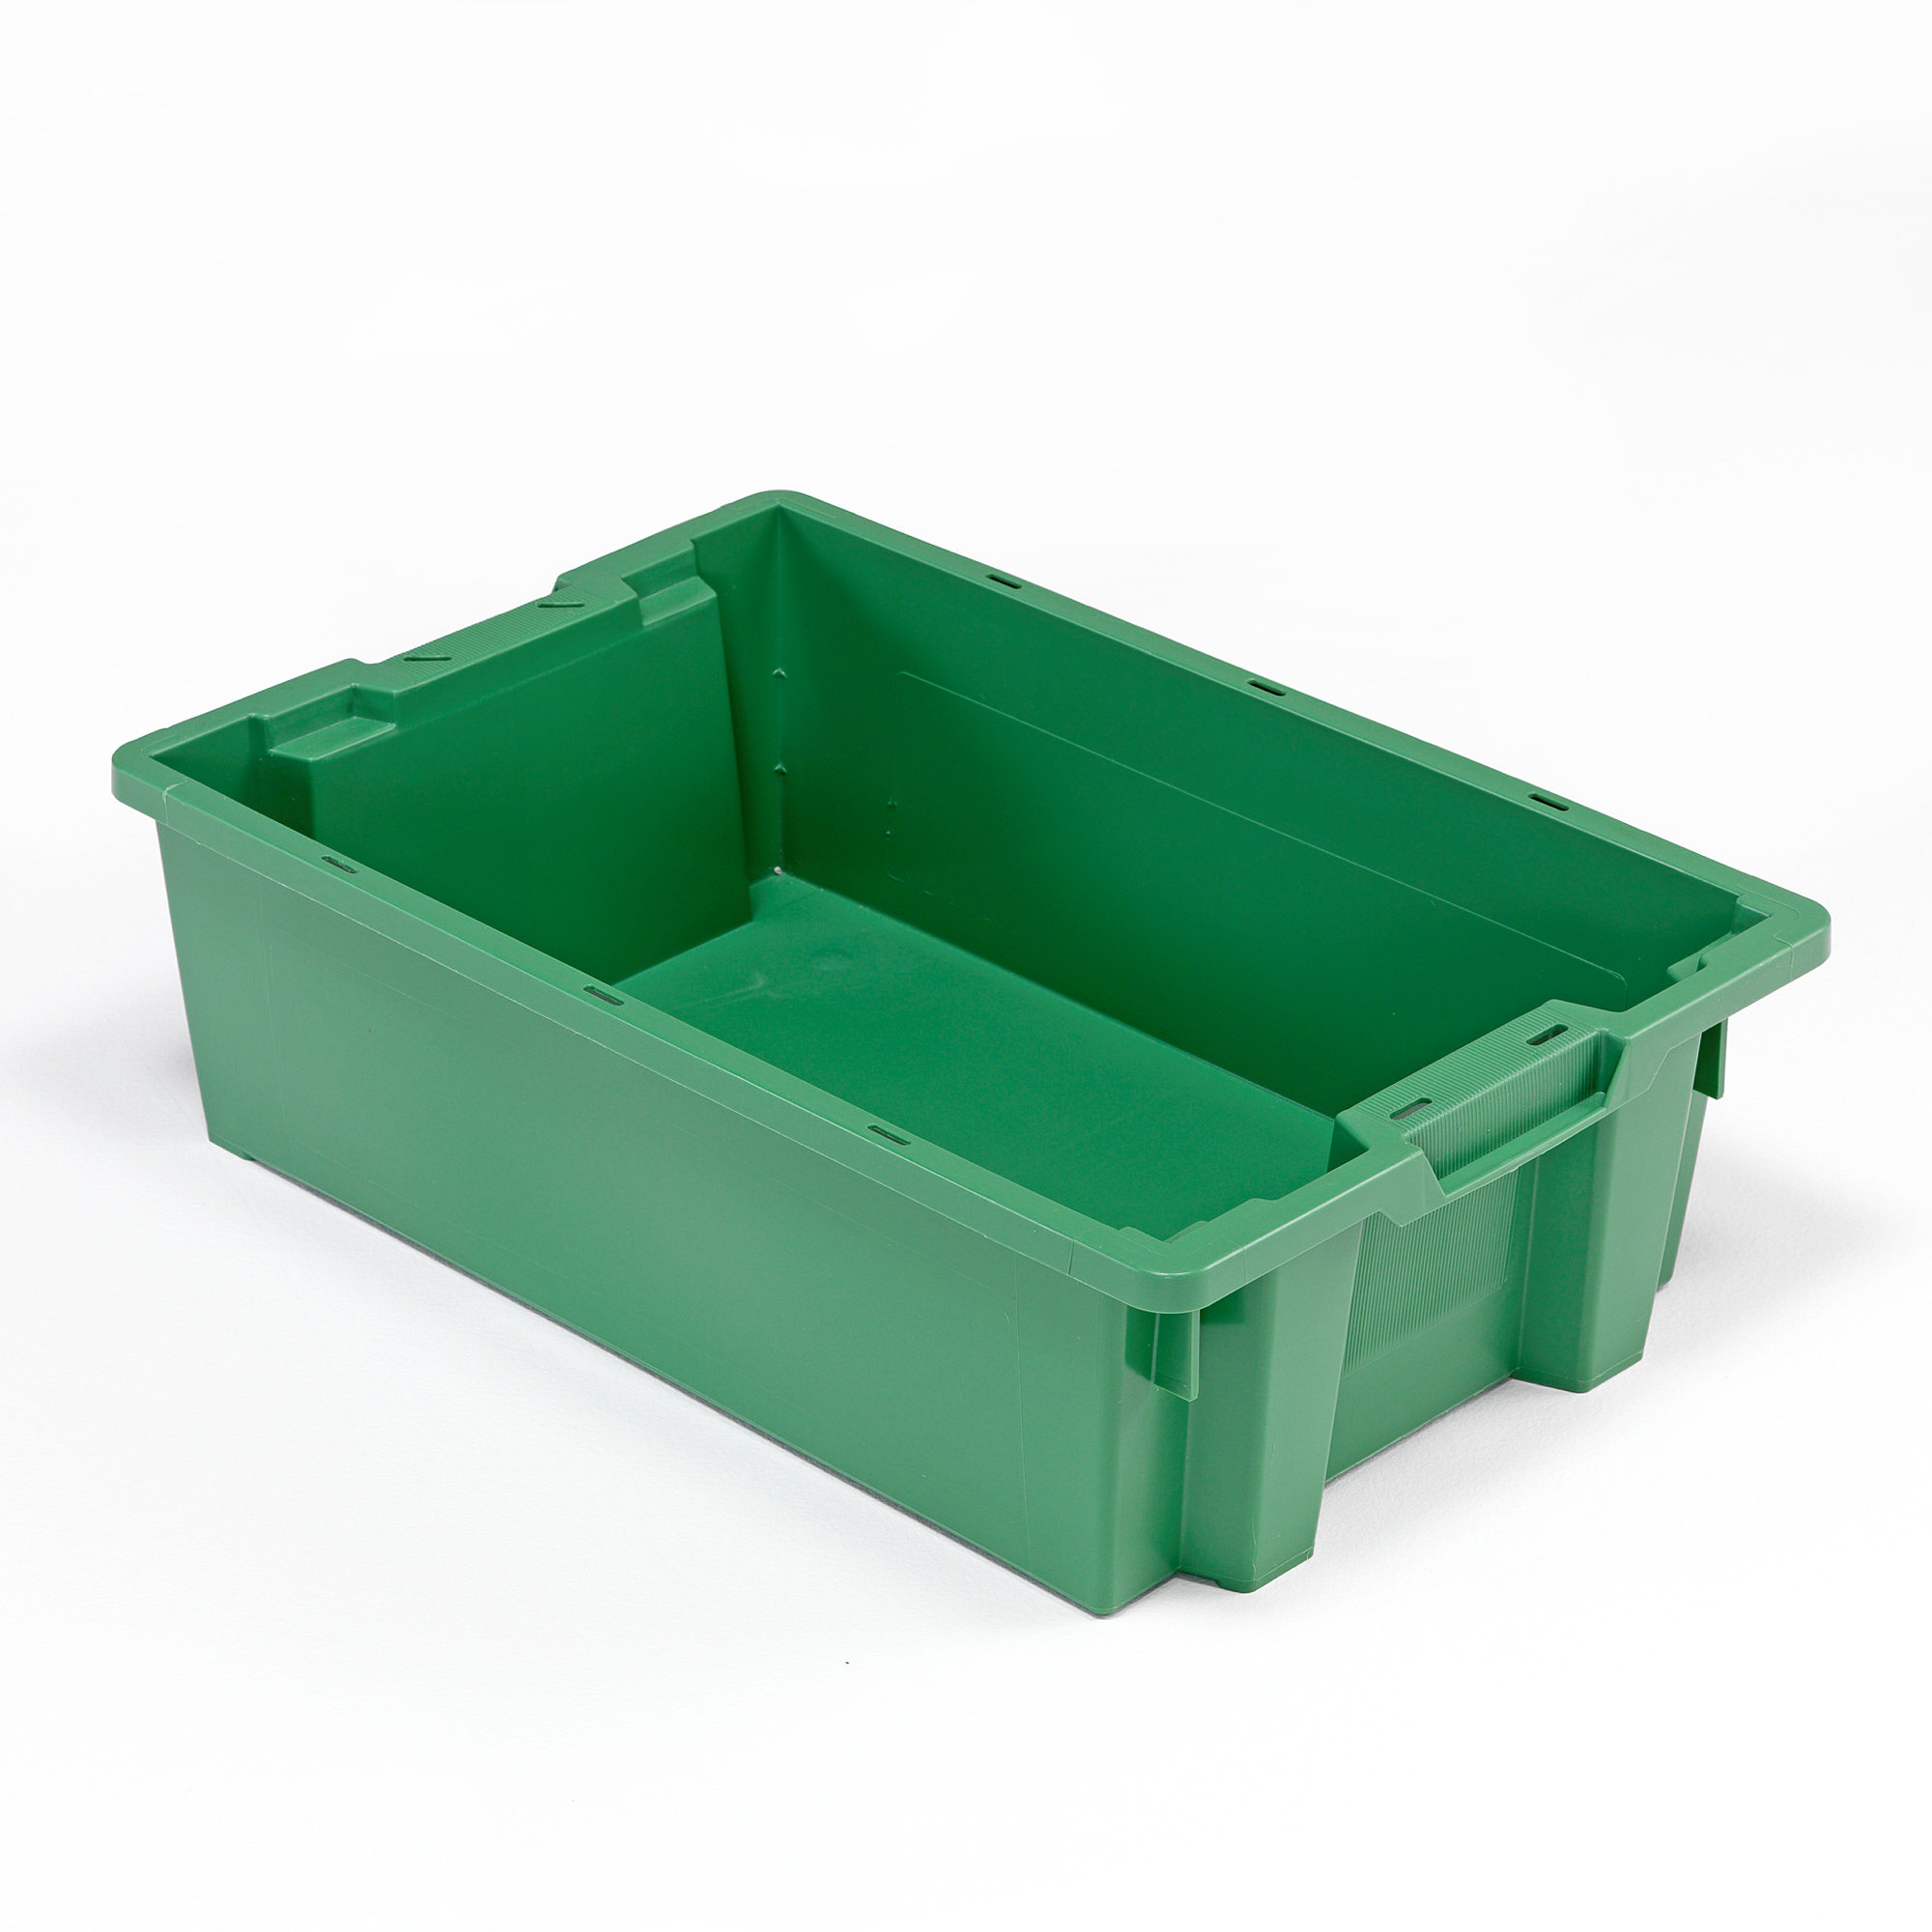 Plastikkisten Stapelbar Plastic Boxes, Stackable, 600x400x180 Mm, 32 L, Green | Aj